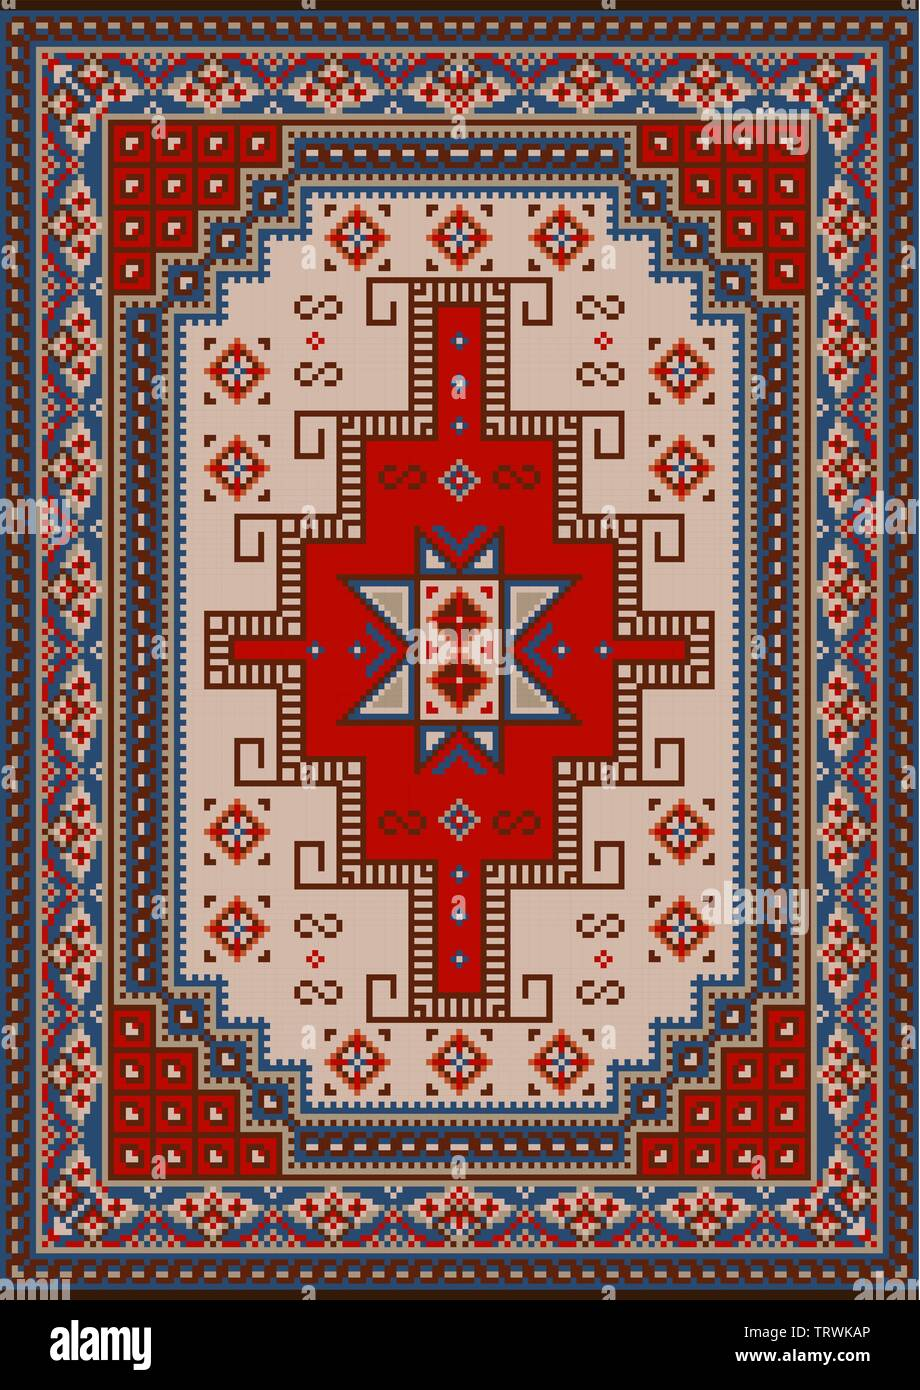 Luxury vintage oriental carpet with red, blue, beige and brown shades on black background - Stock Image